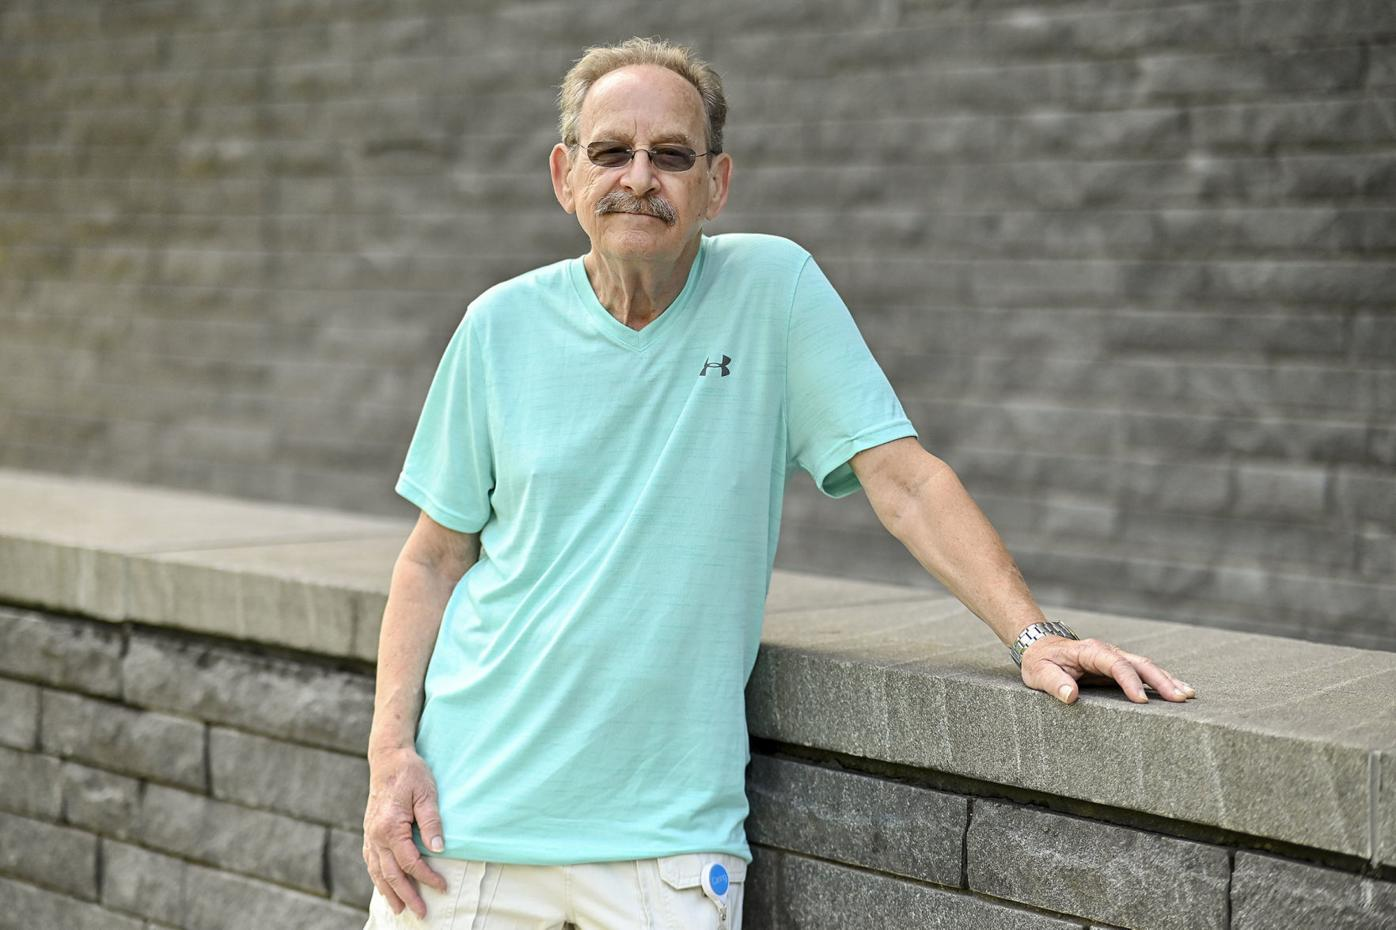 A life well-examined: Scranton patient retires after hundreds of physicals from medical students